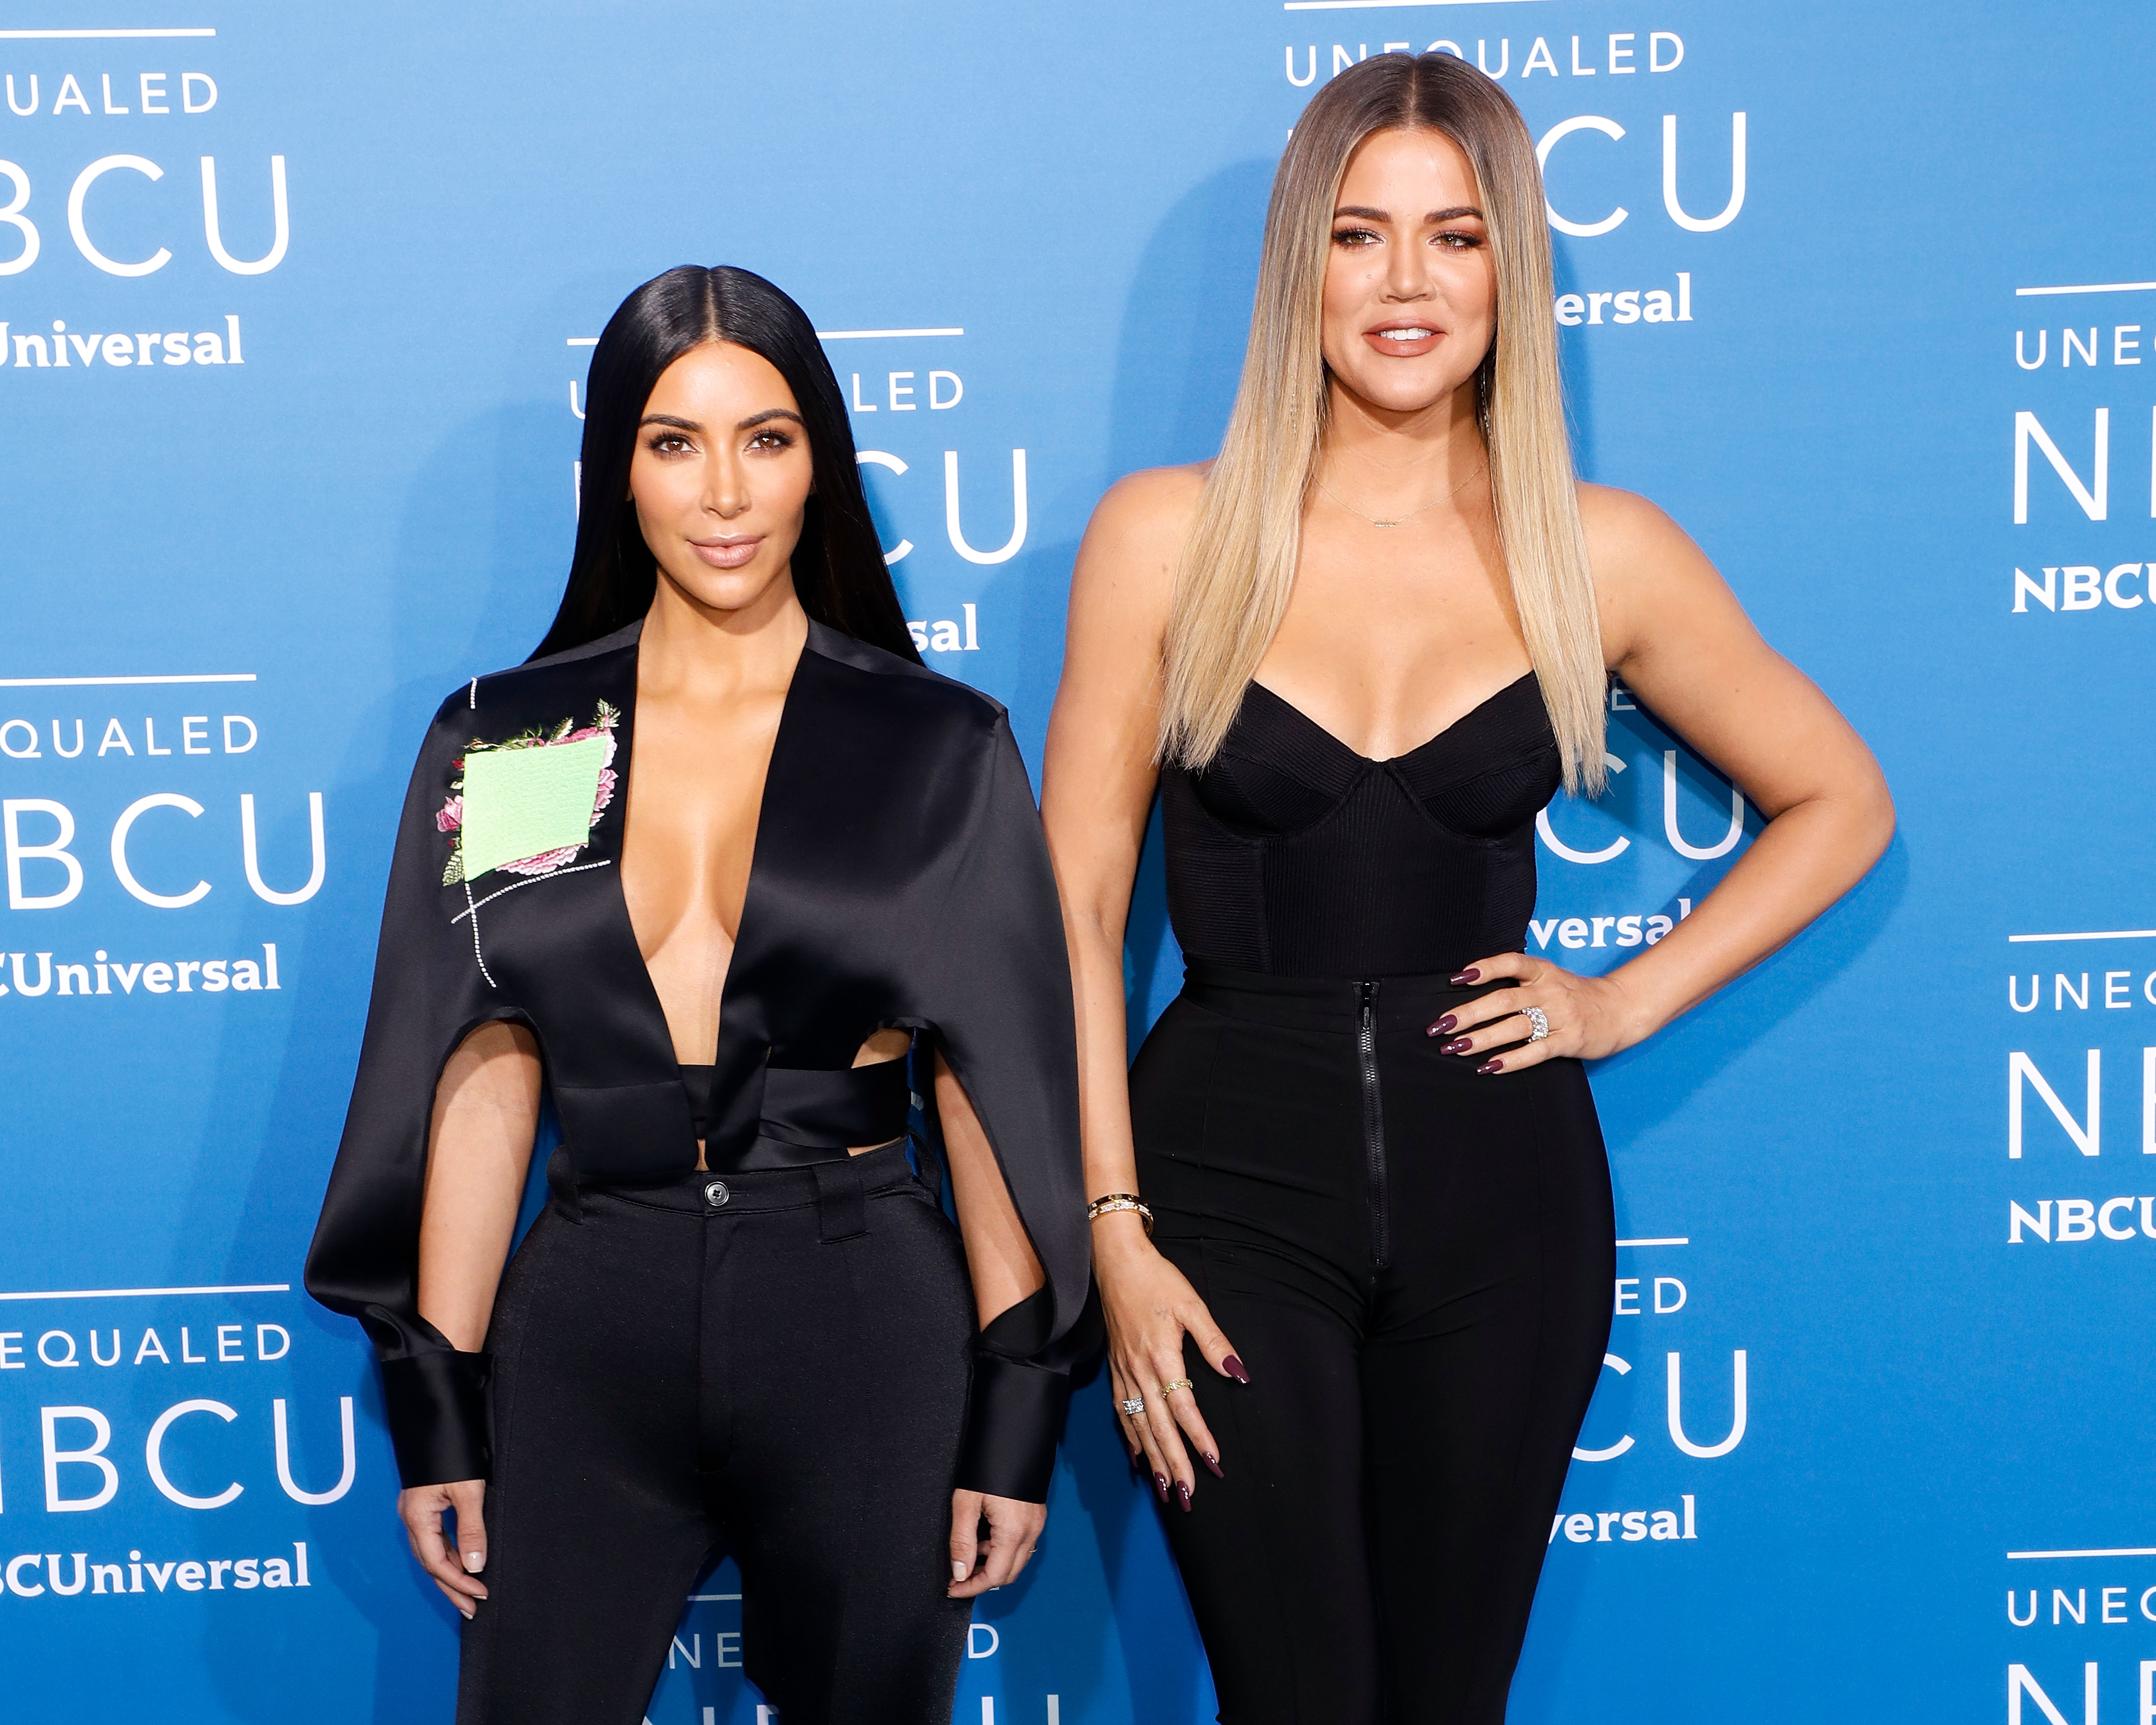 Kim Kardashian 'livid' for Khloe after she accused Jordyn Woods of 'breaking up family'